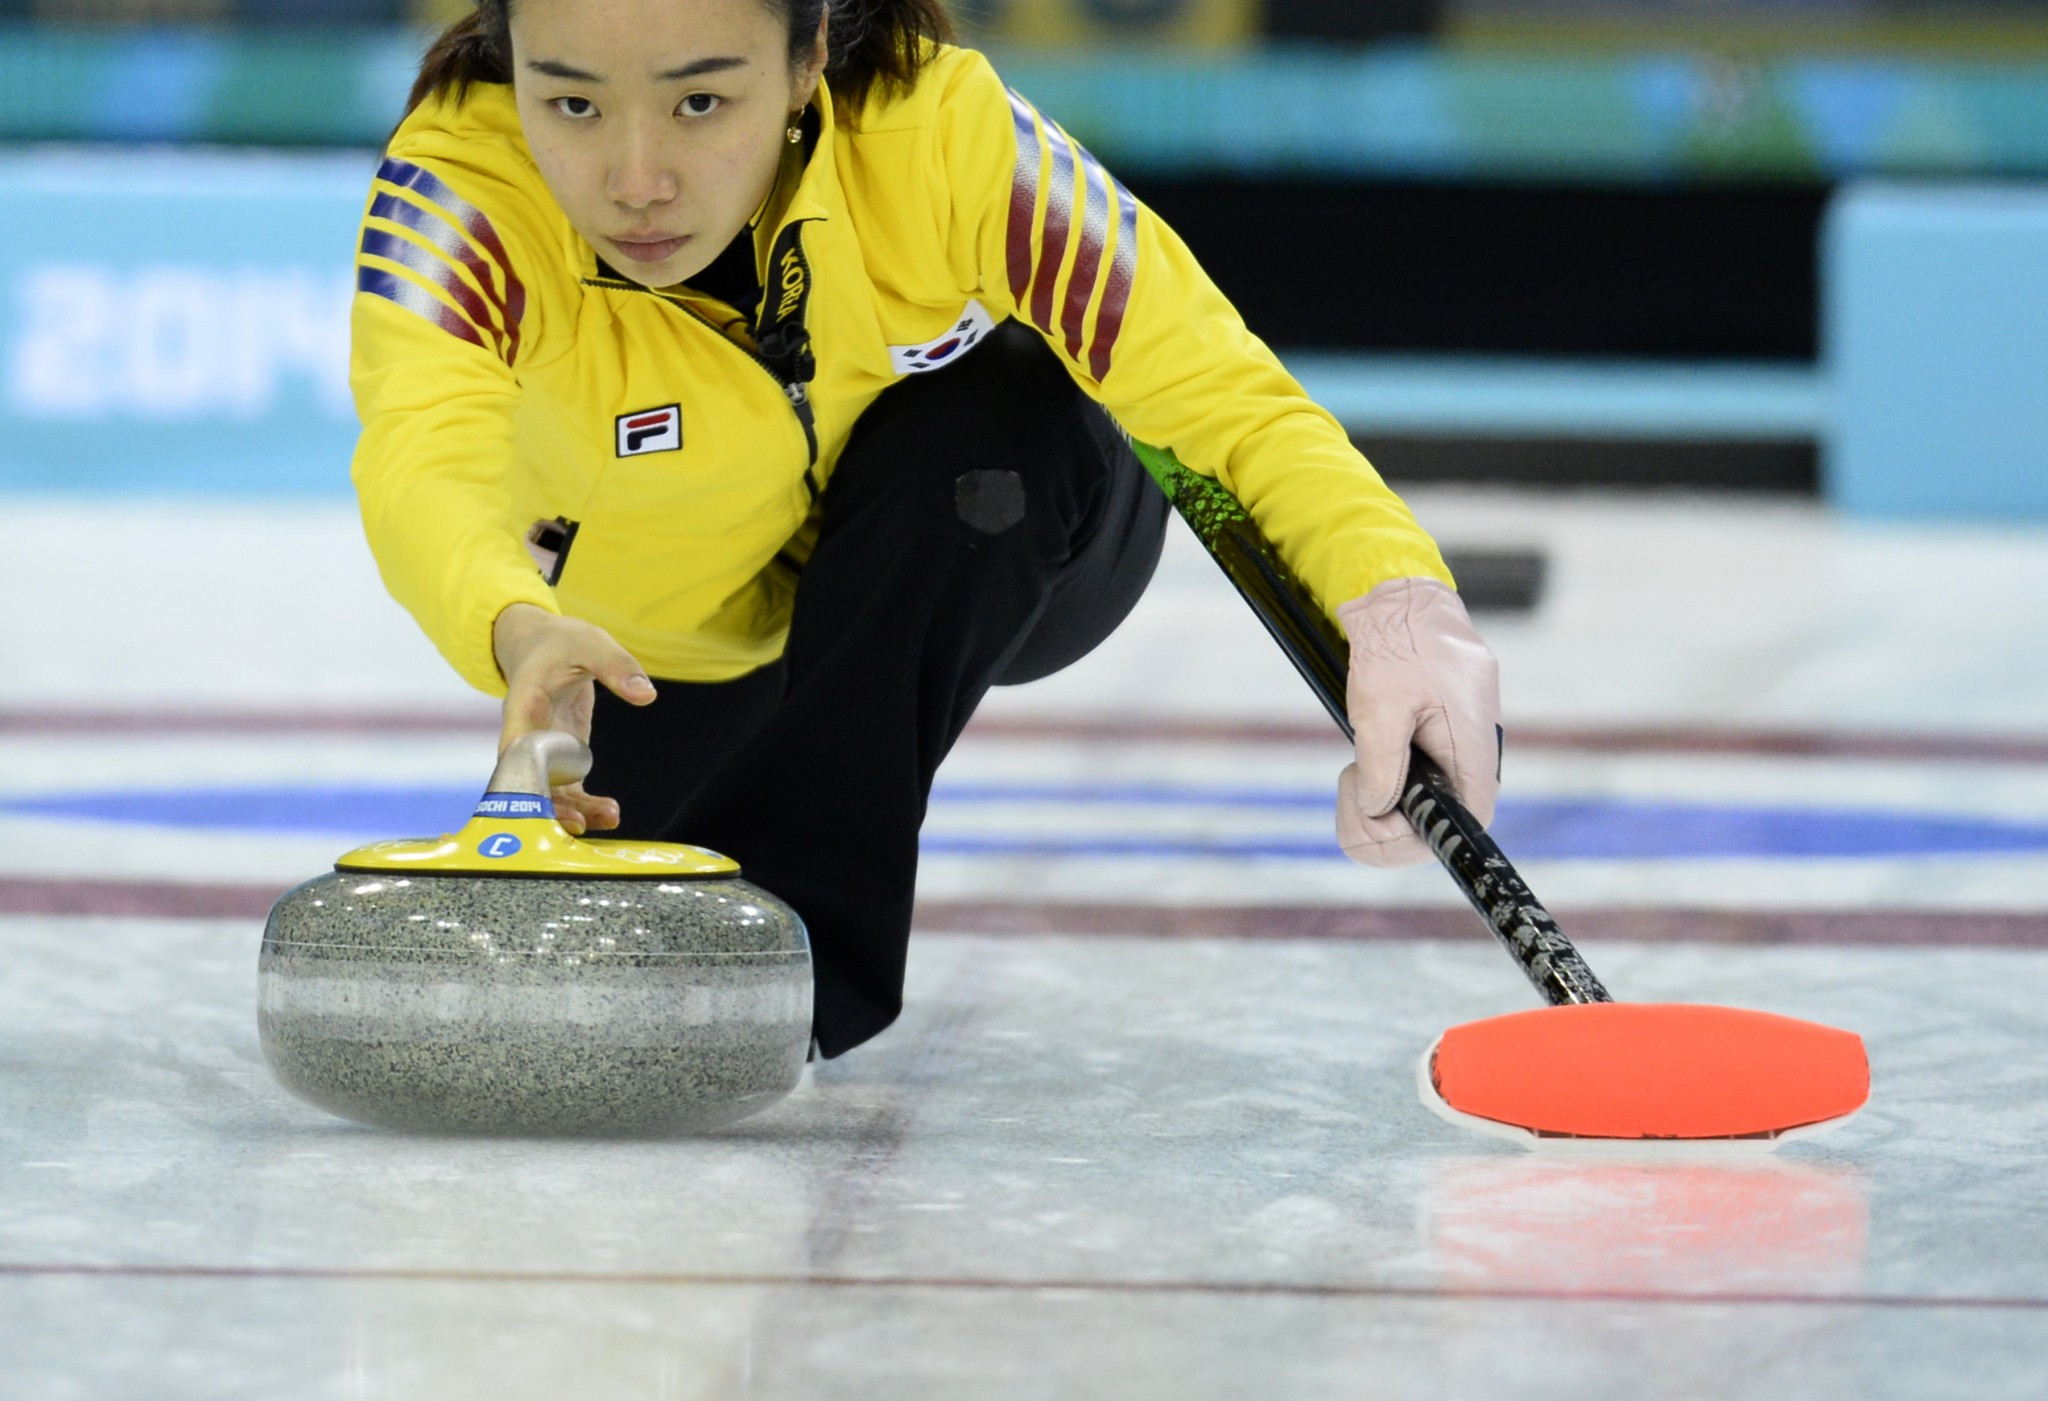 Jisun Kim of South Korea pictured competing at Sochi 2014 ©Getty Images